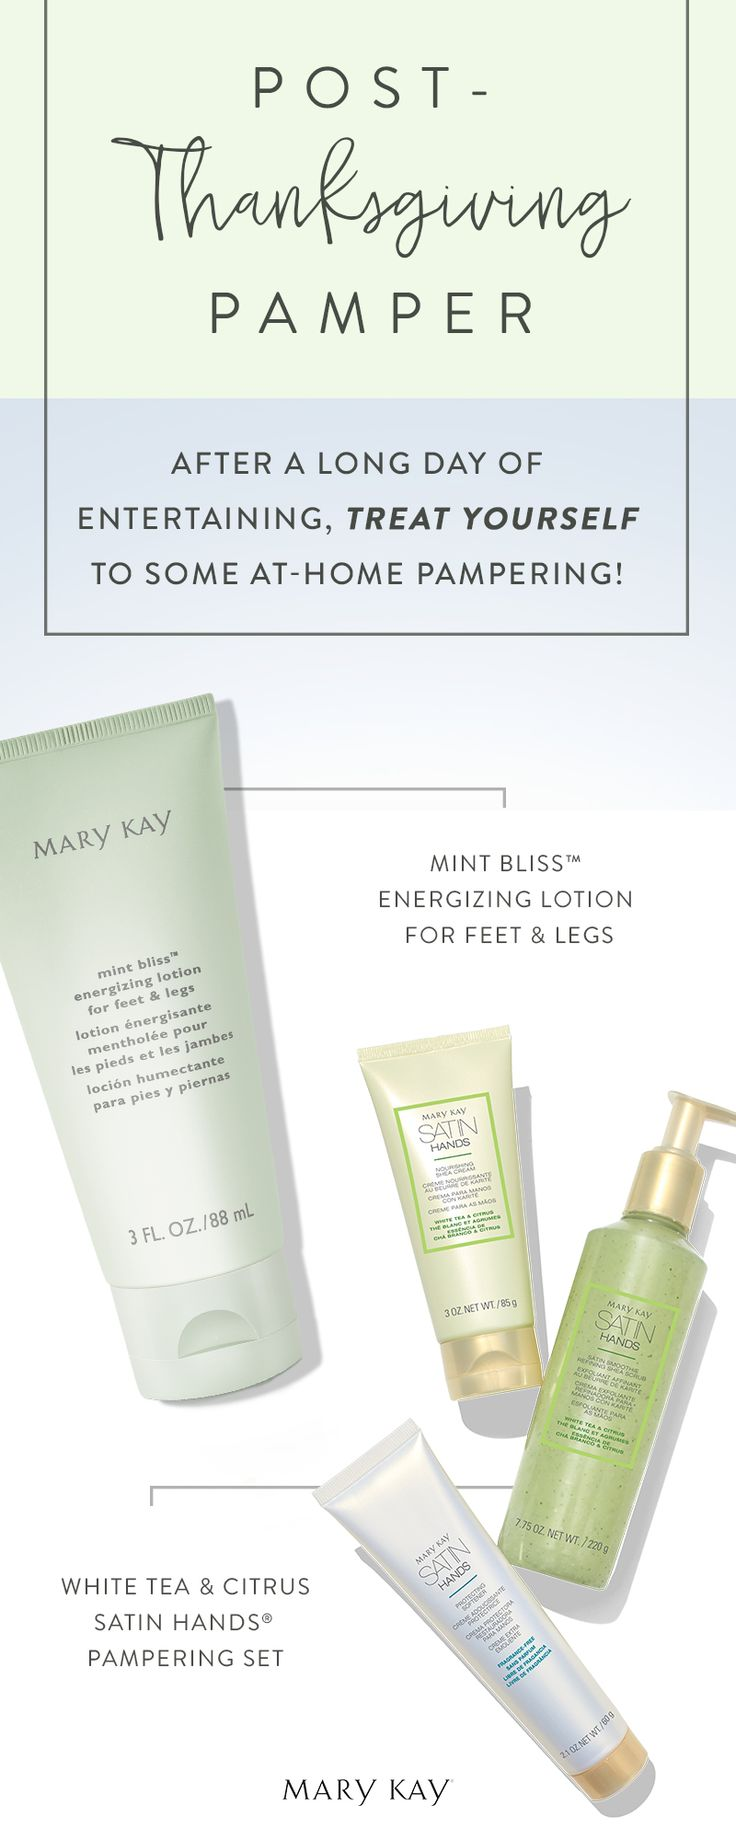 Post-Thanksgiving pampering calls for comfort and joy for your hands, feet and legs. | Mary Kay